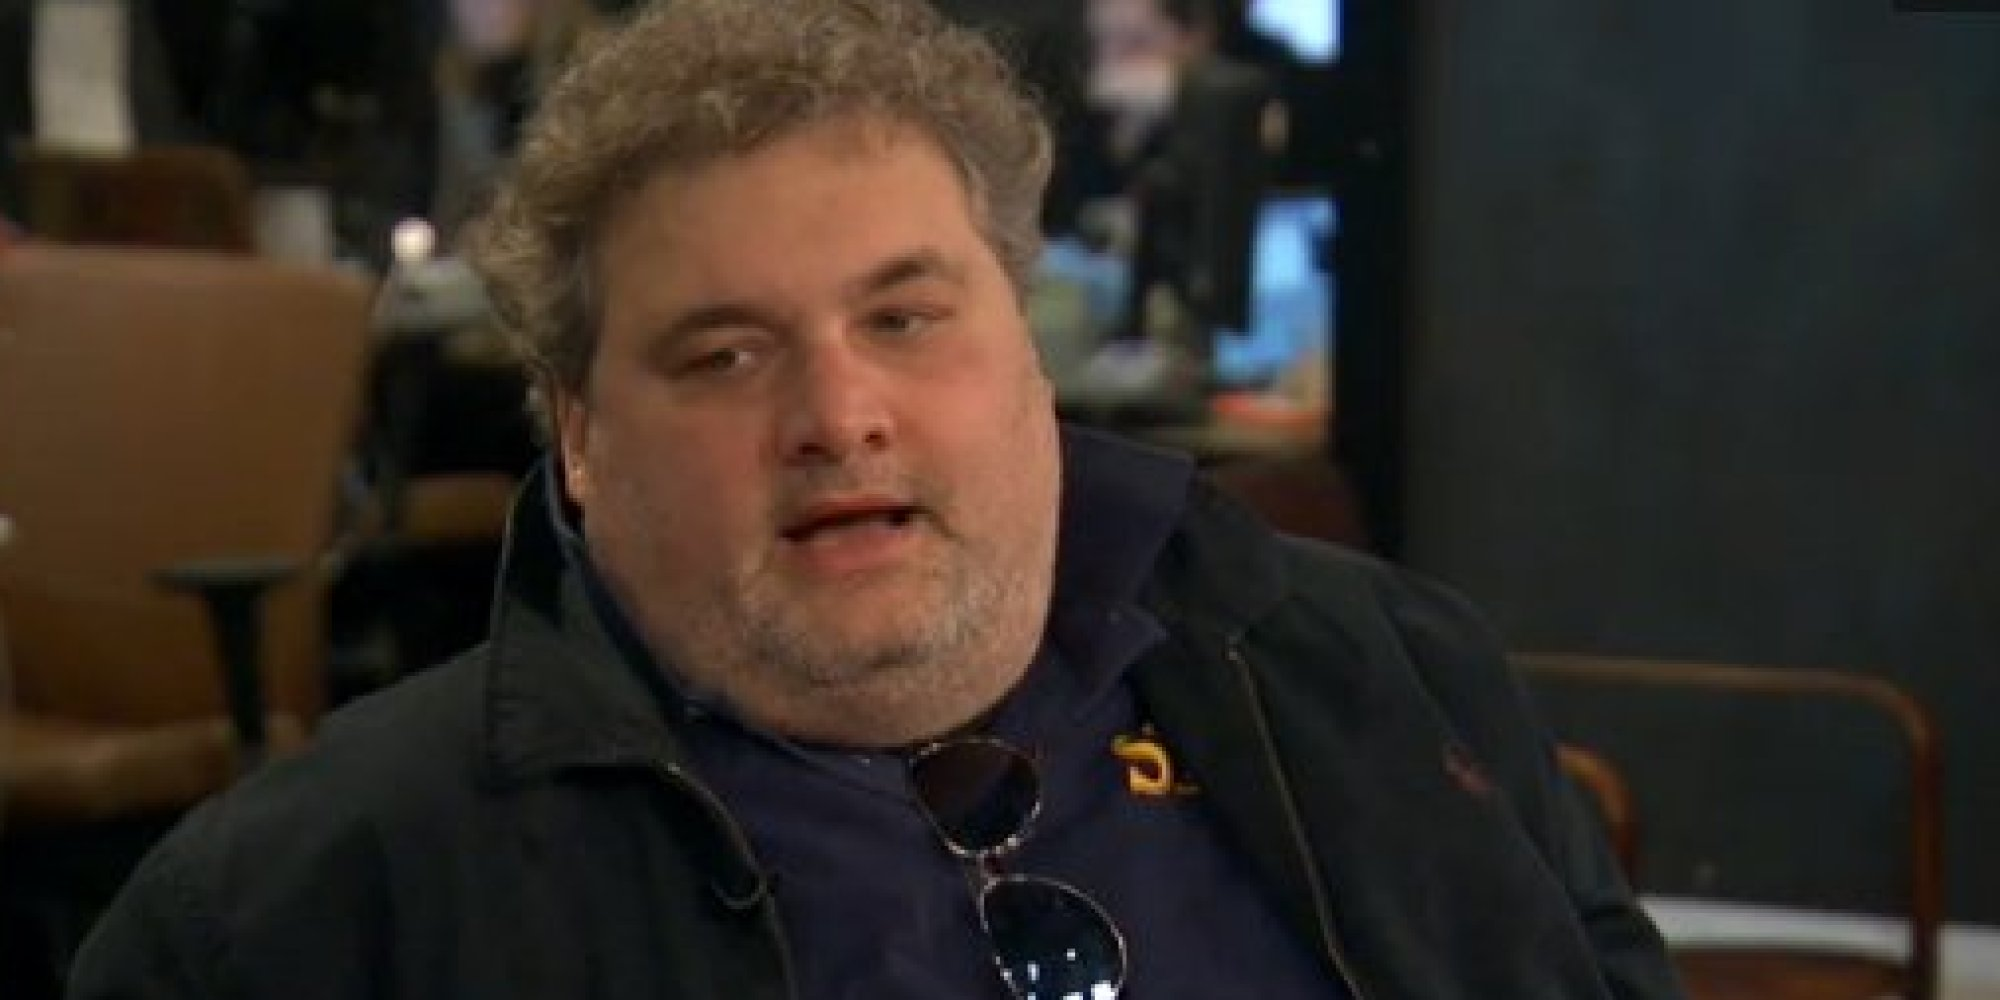 Artie Langes Beer League also known simply as Beer League is a 2006 American comedy film written produced and starring Artie Lange It was released in select